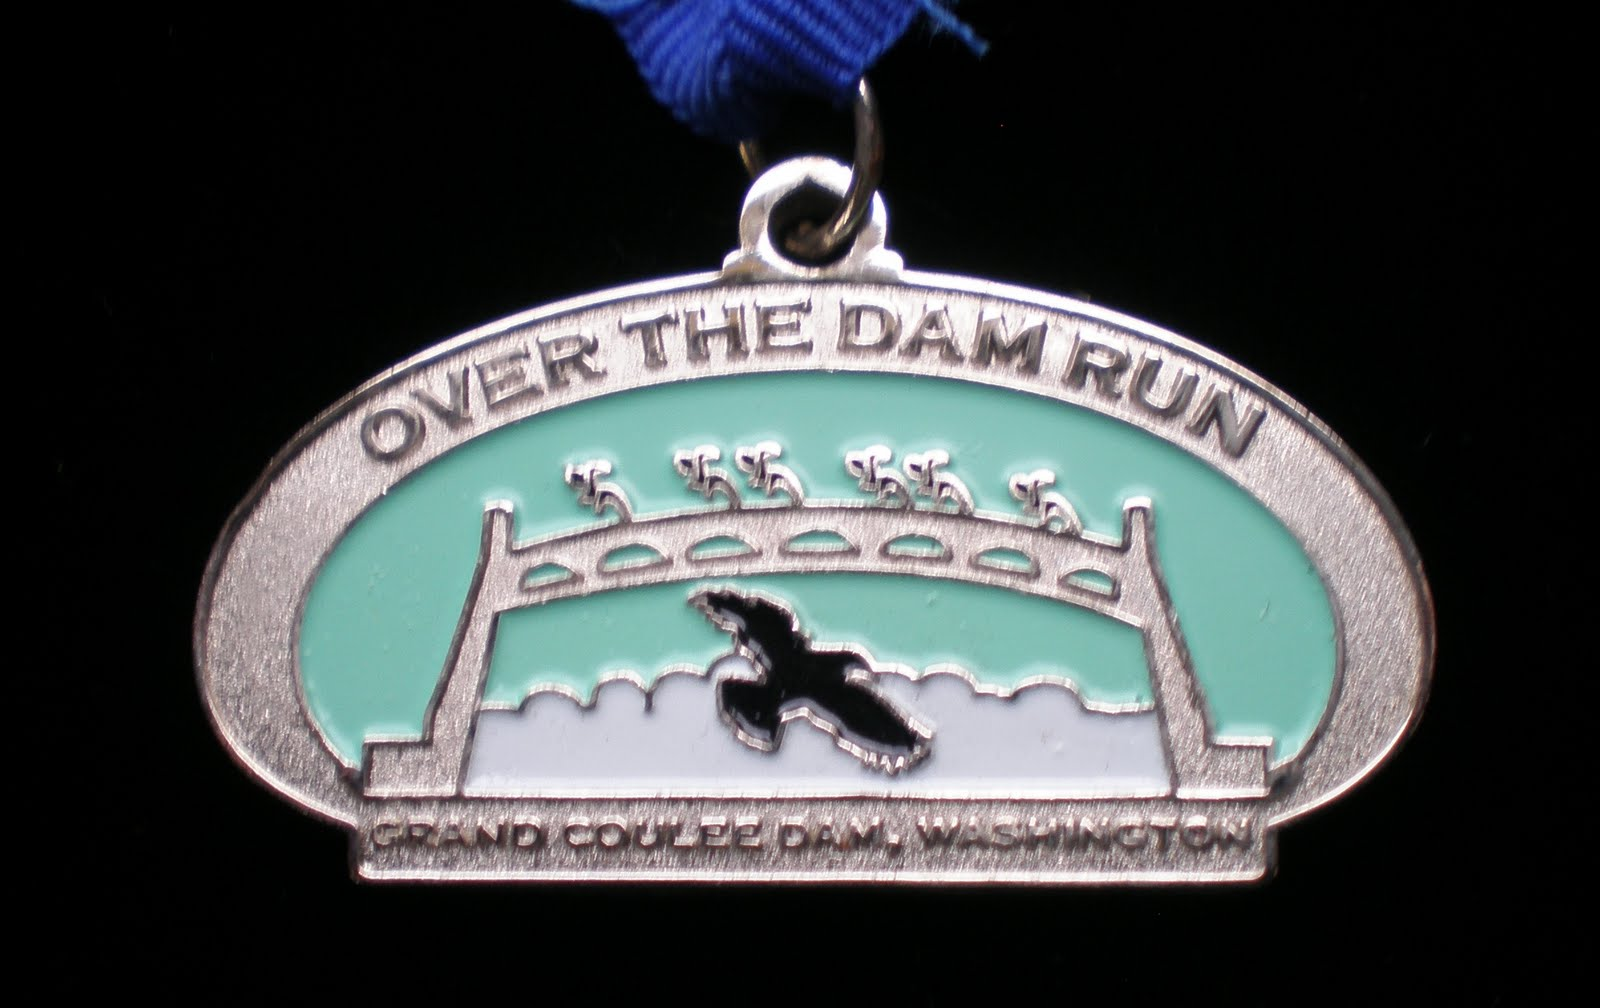 the 2008 Over the Damn Run half marathon medal